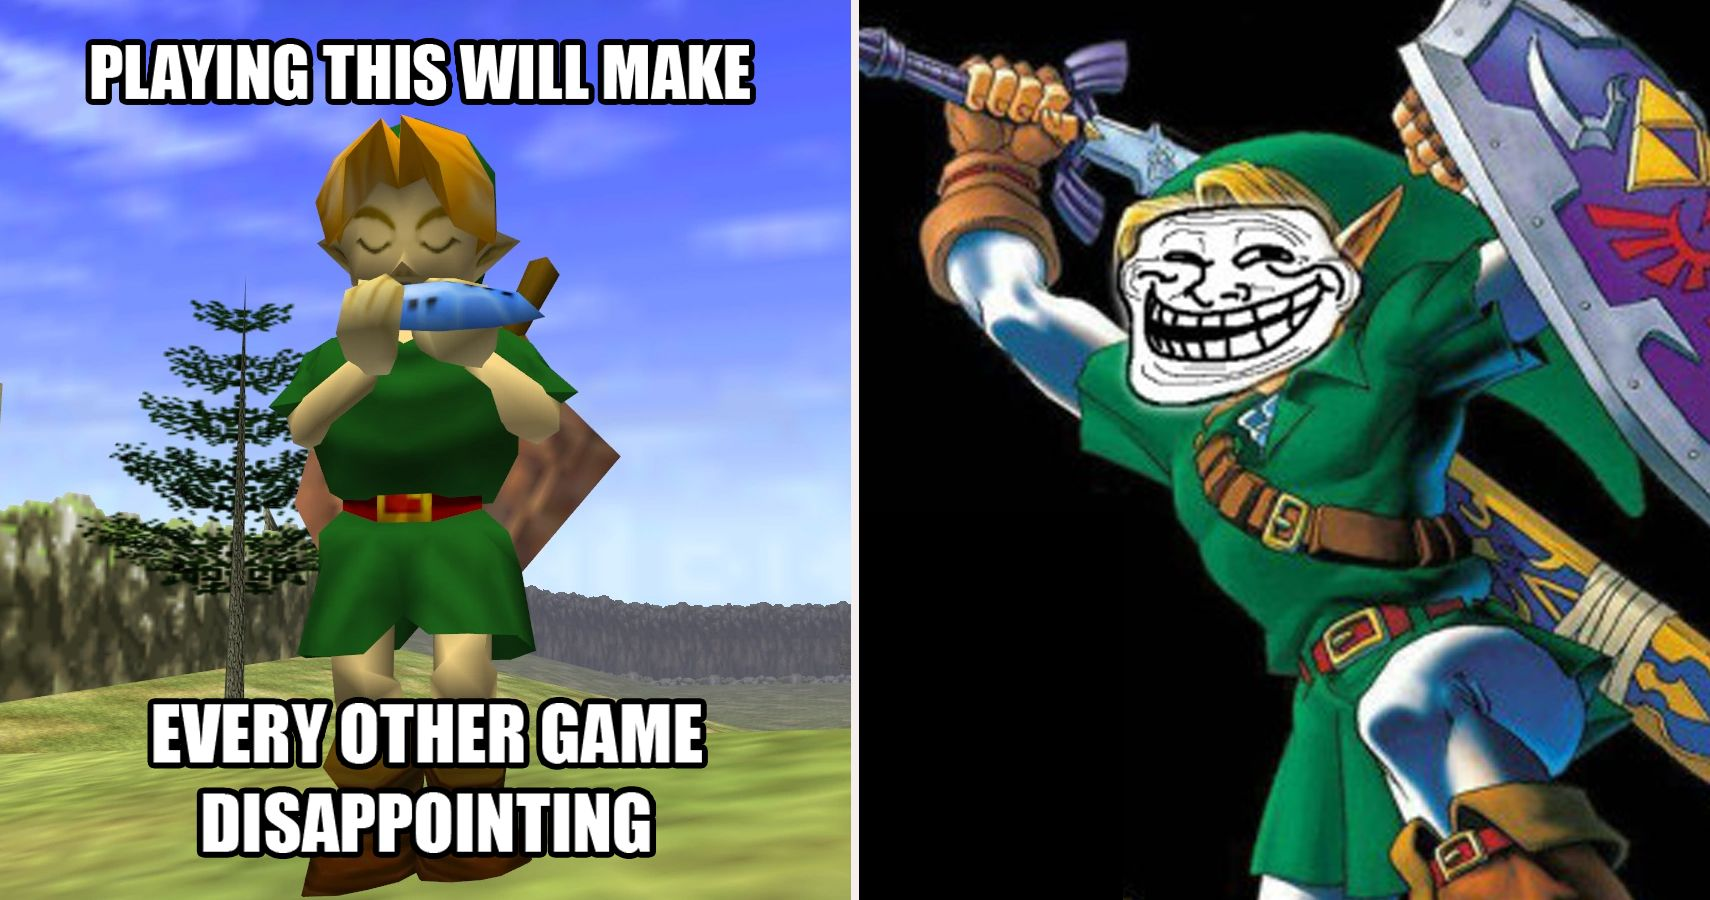 ocarina of time meme hilarious ocarina of time memes only true zelda fans will understand